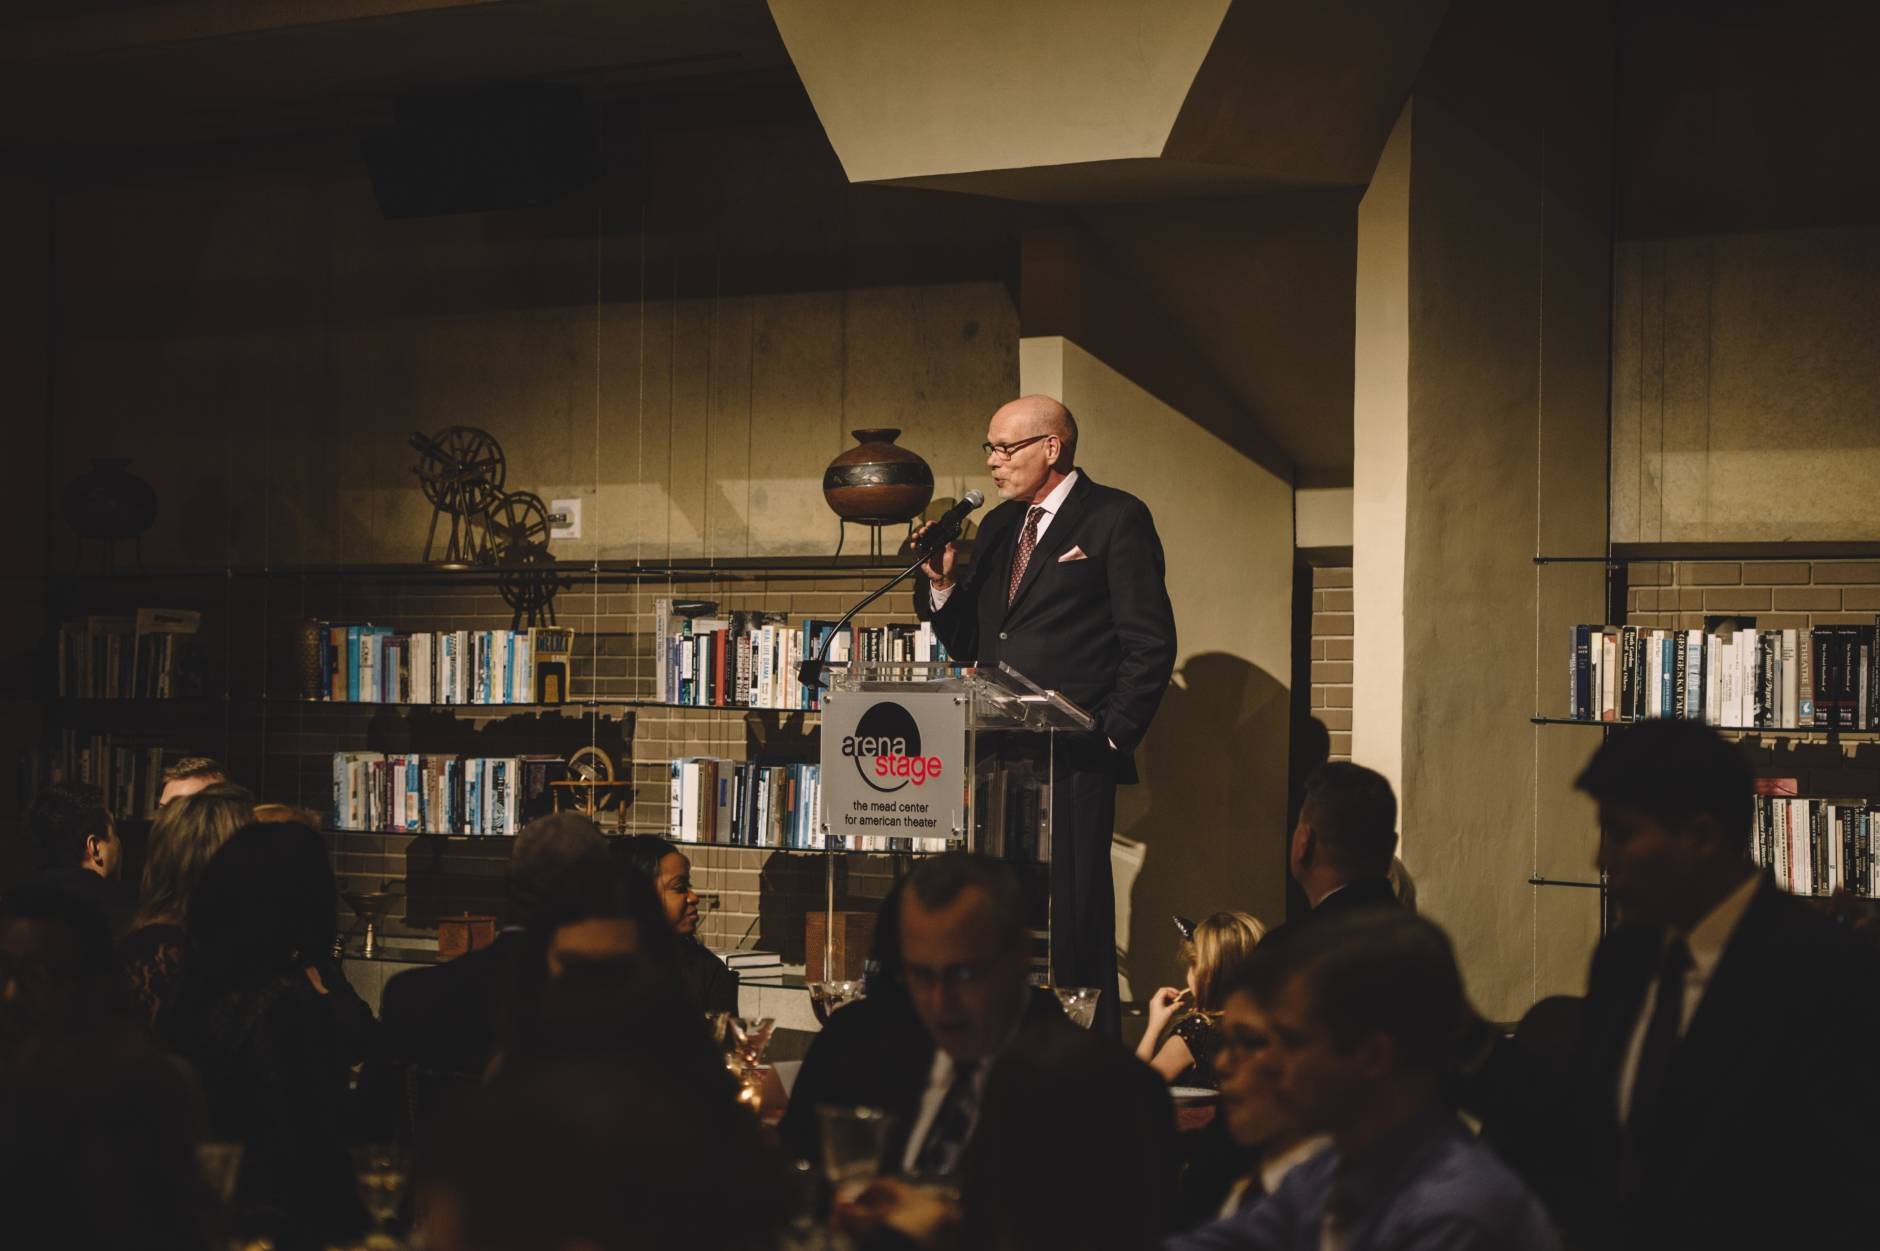 In this photo, Arena Stage Executive Director Edgar Dobie addresses dinner guests. (Photo by Cameron Whitman)